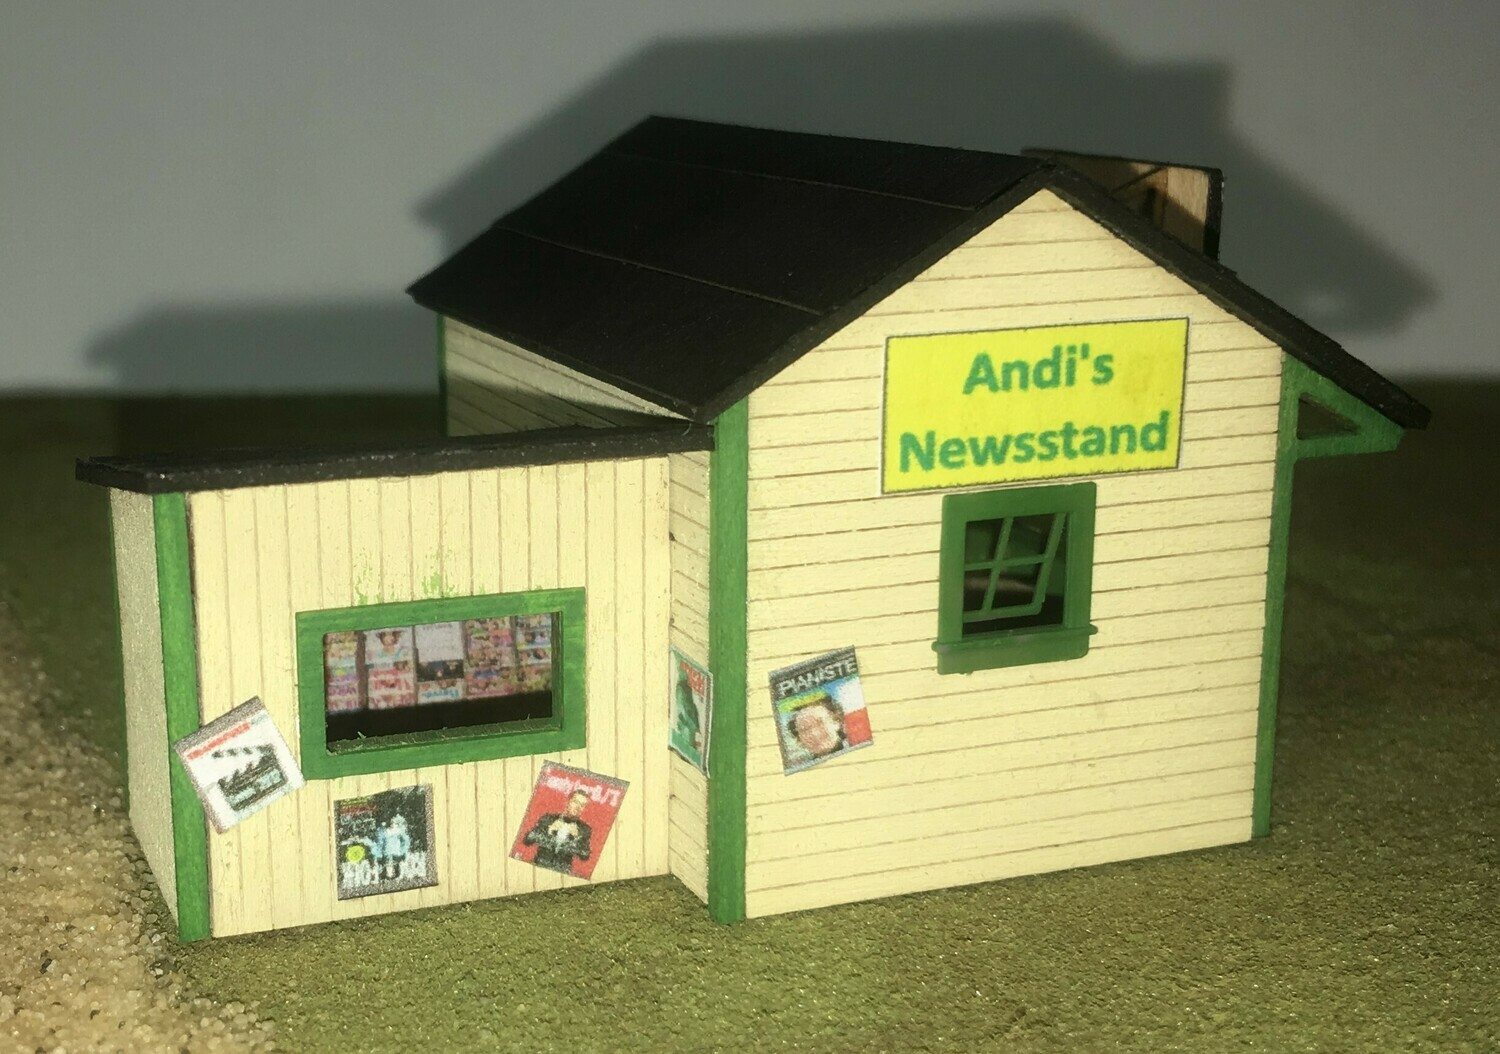 N Scale - Motrak Models - 13004 - Structure, Commercial, Newsstand - Commercial Structures - Andis Sandwich Shop & Newsstand